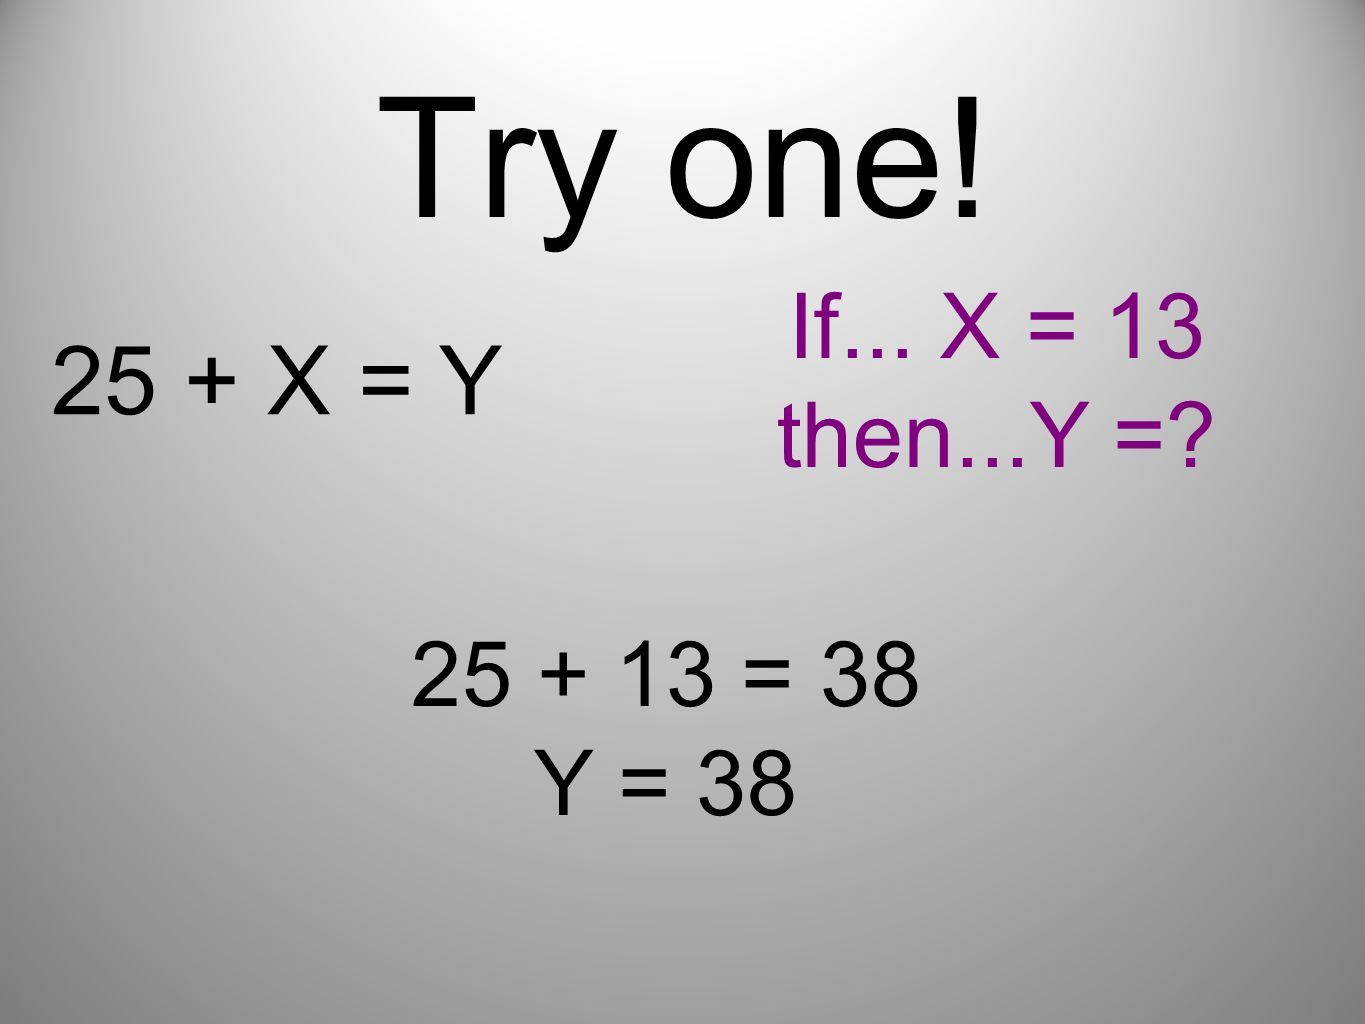 Try one! 25 + X = Y If... X = 13 then...Y =? 25 + 13 = 38 Y = 38